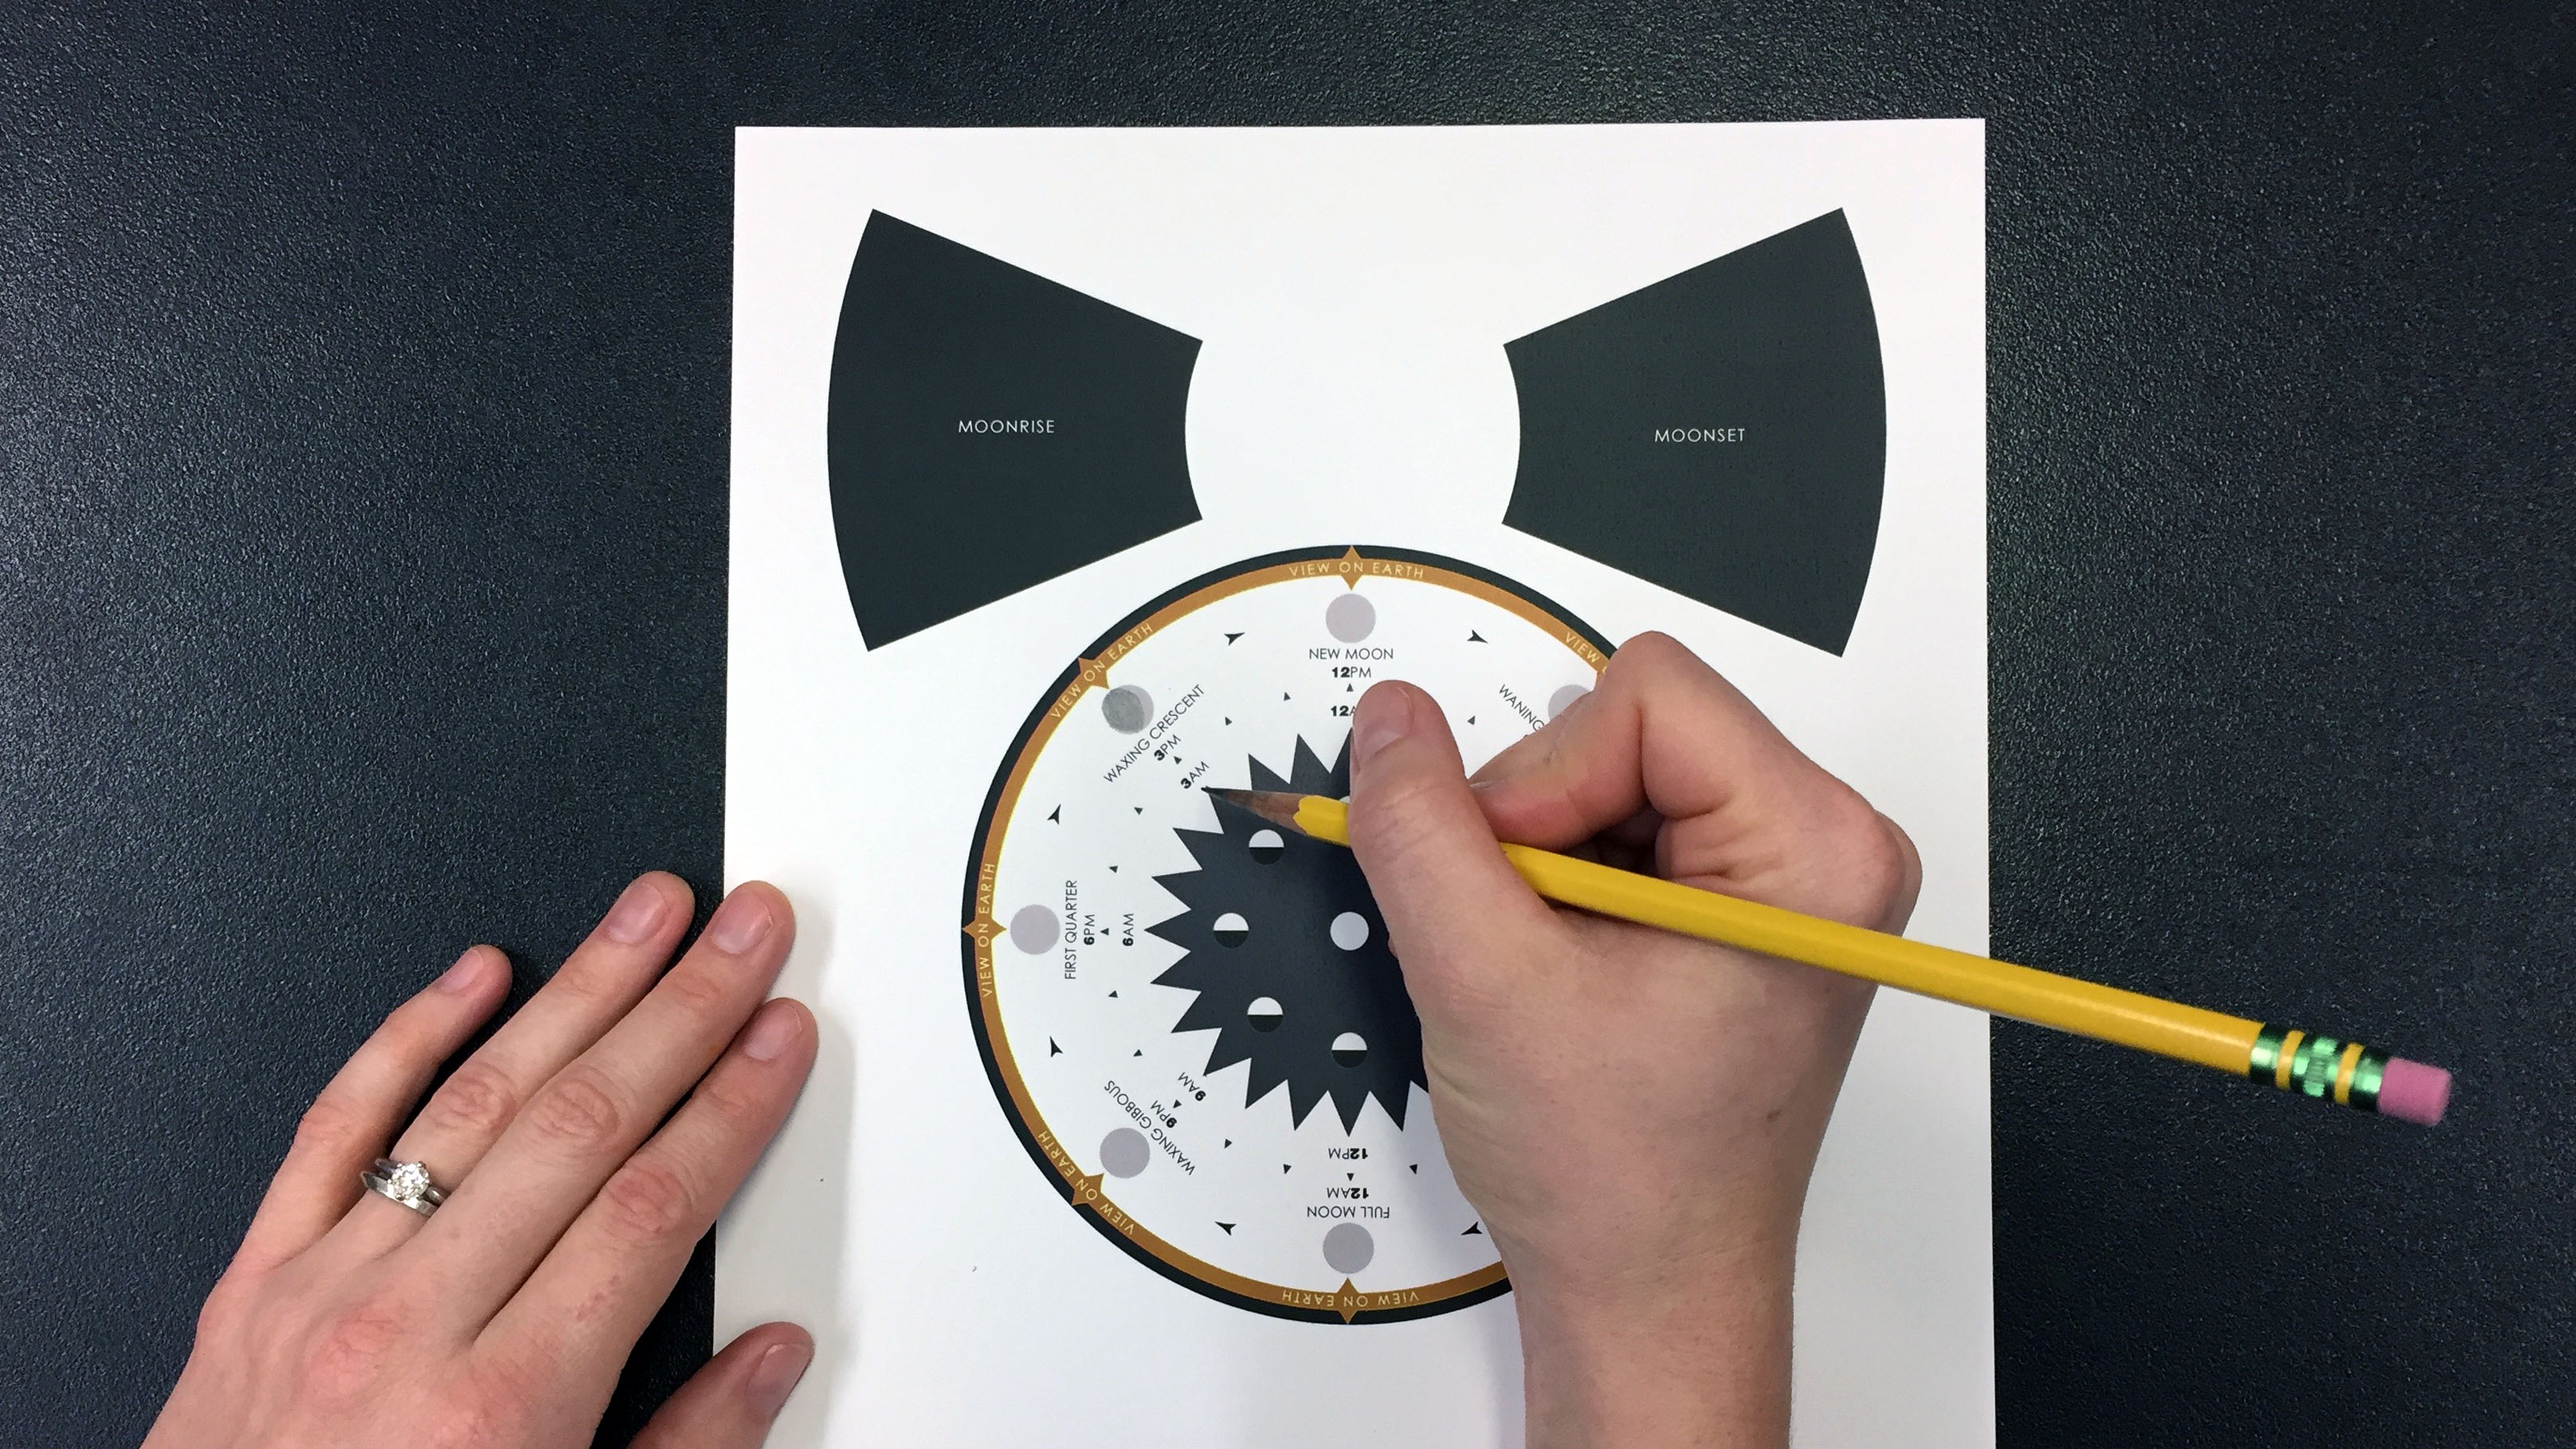 A pencil is used to shade in the moon phases on the Moon Phases Wheel